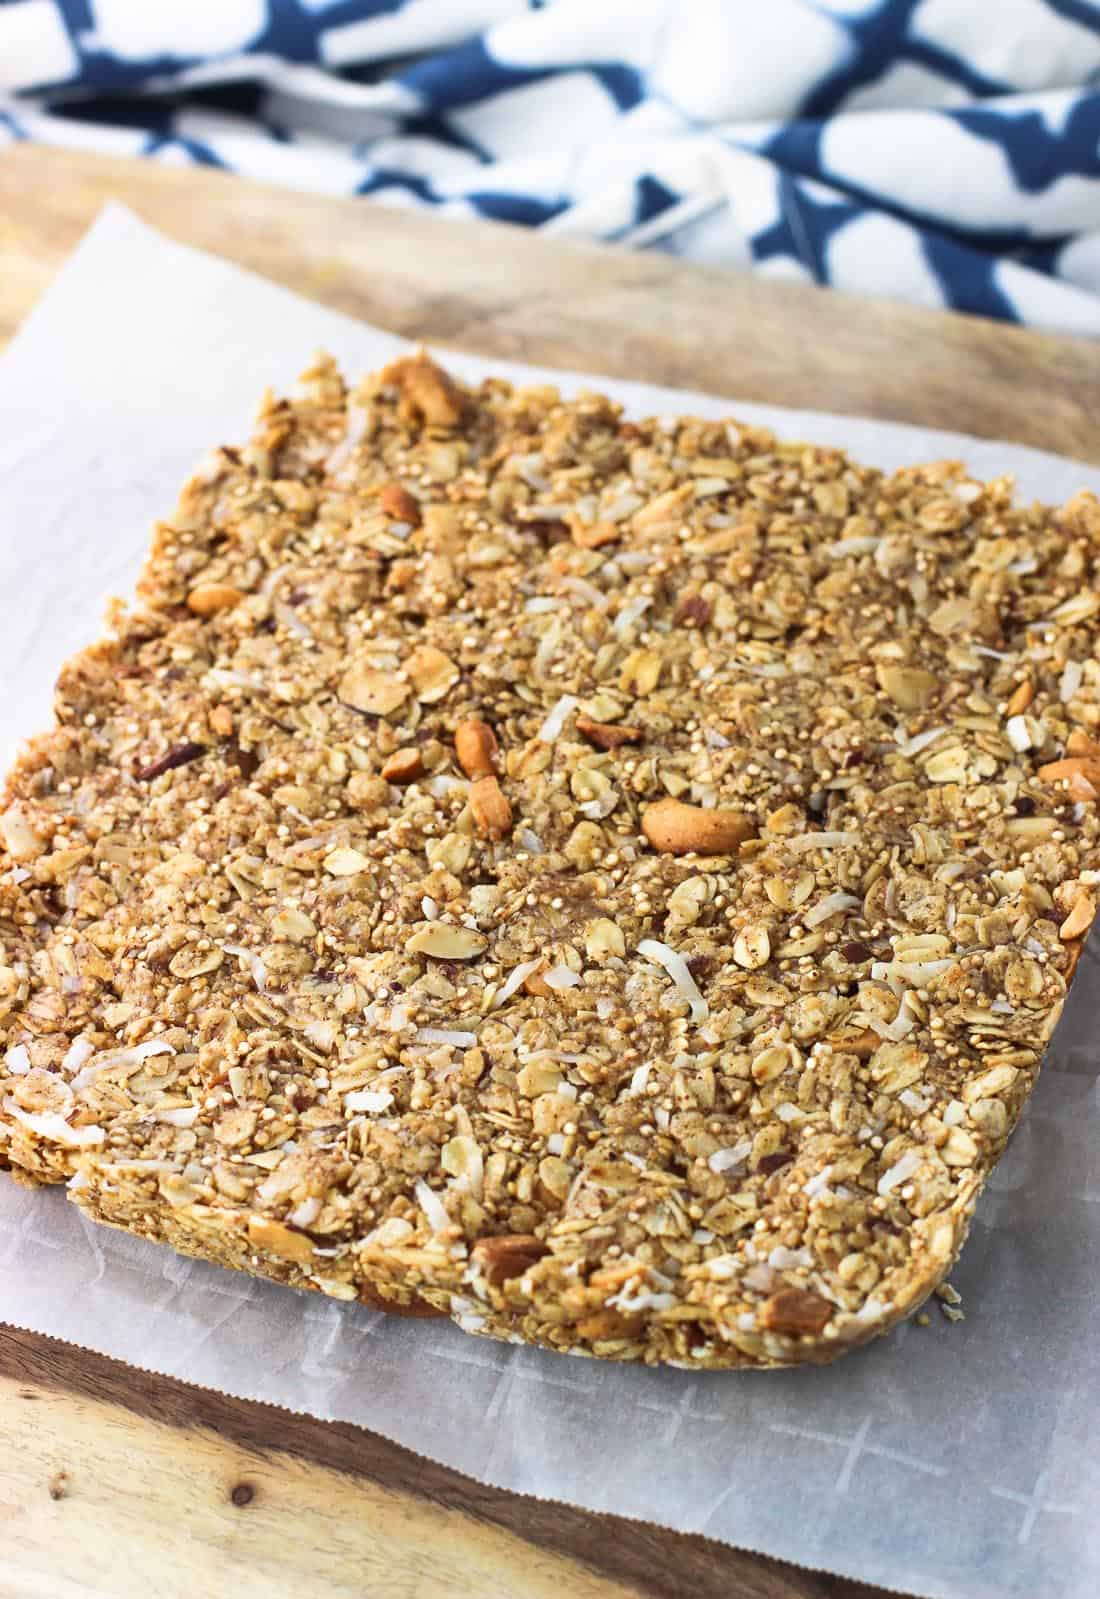 The square granola bar mixture on a parchment-lined cutting board before being cut into slices